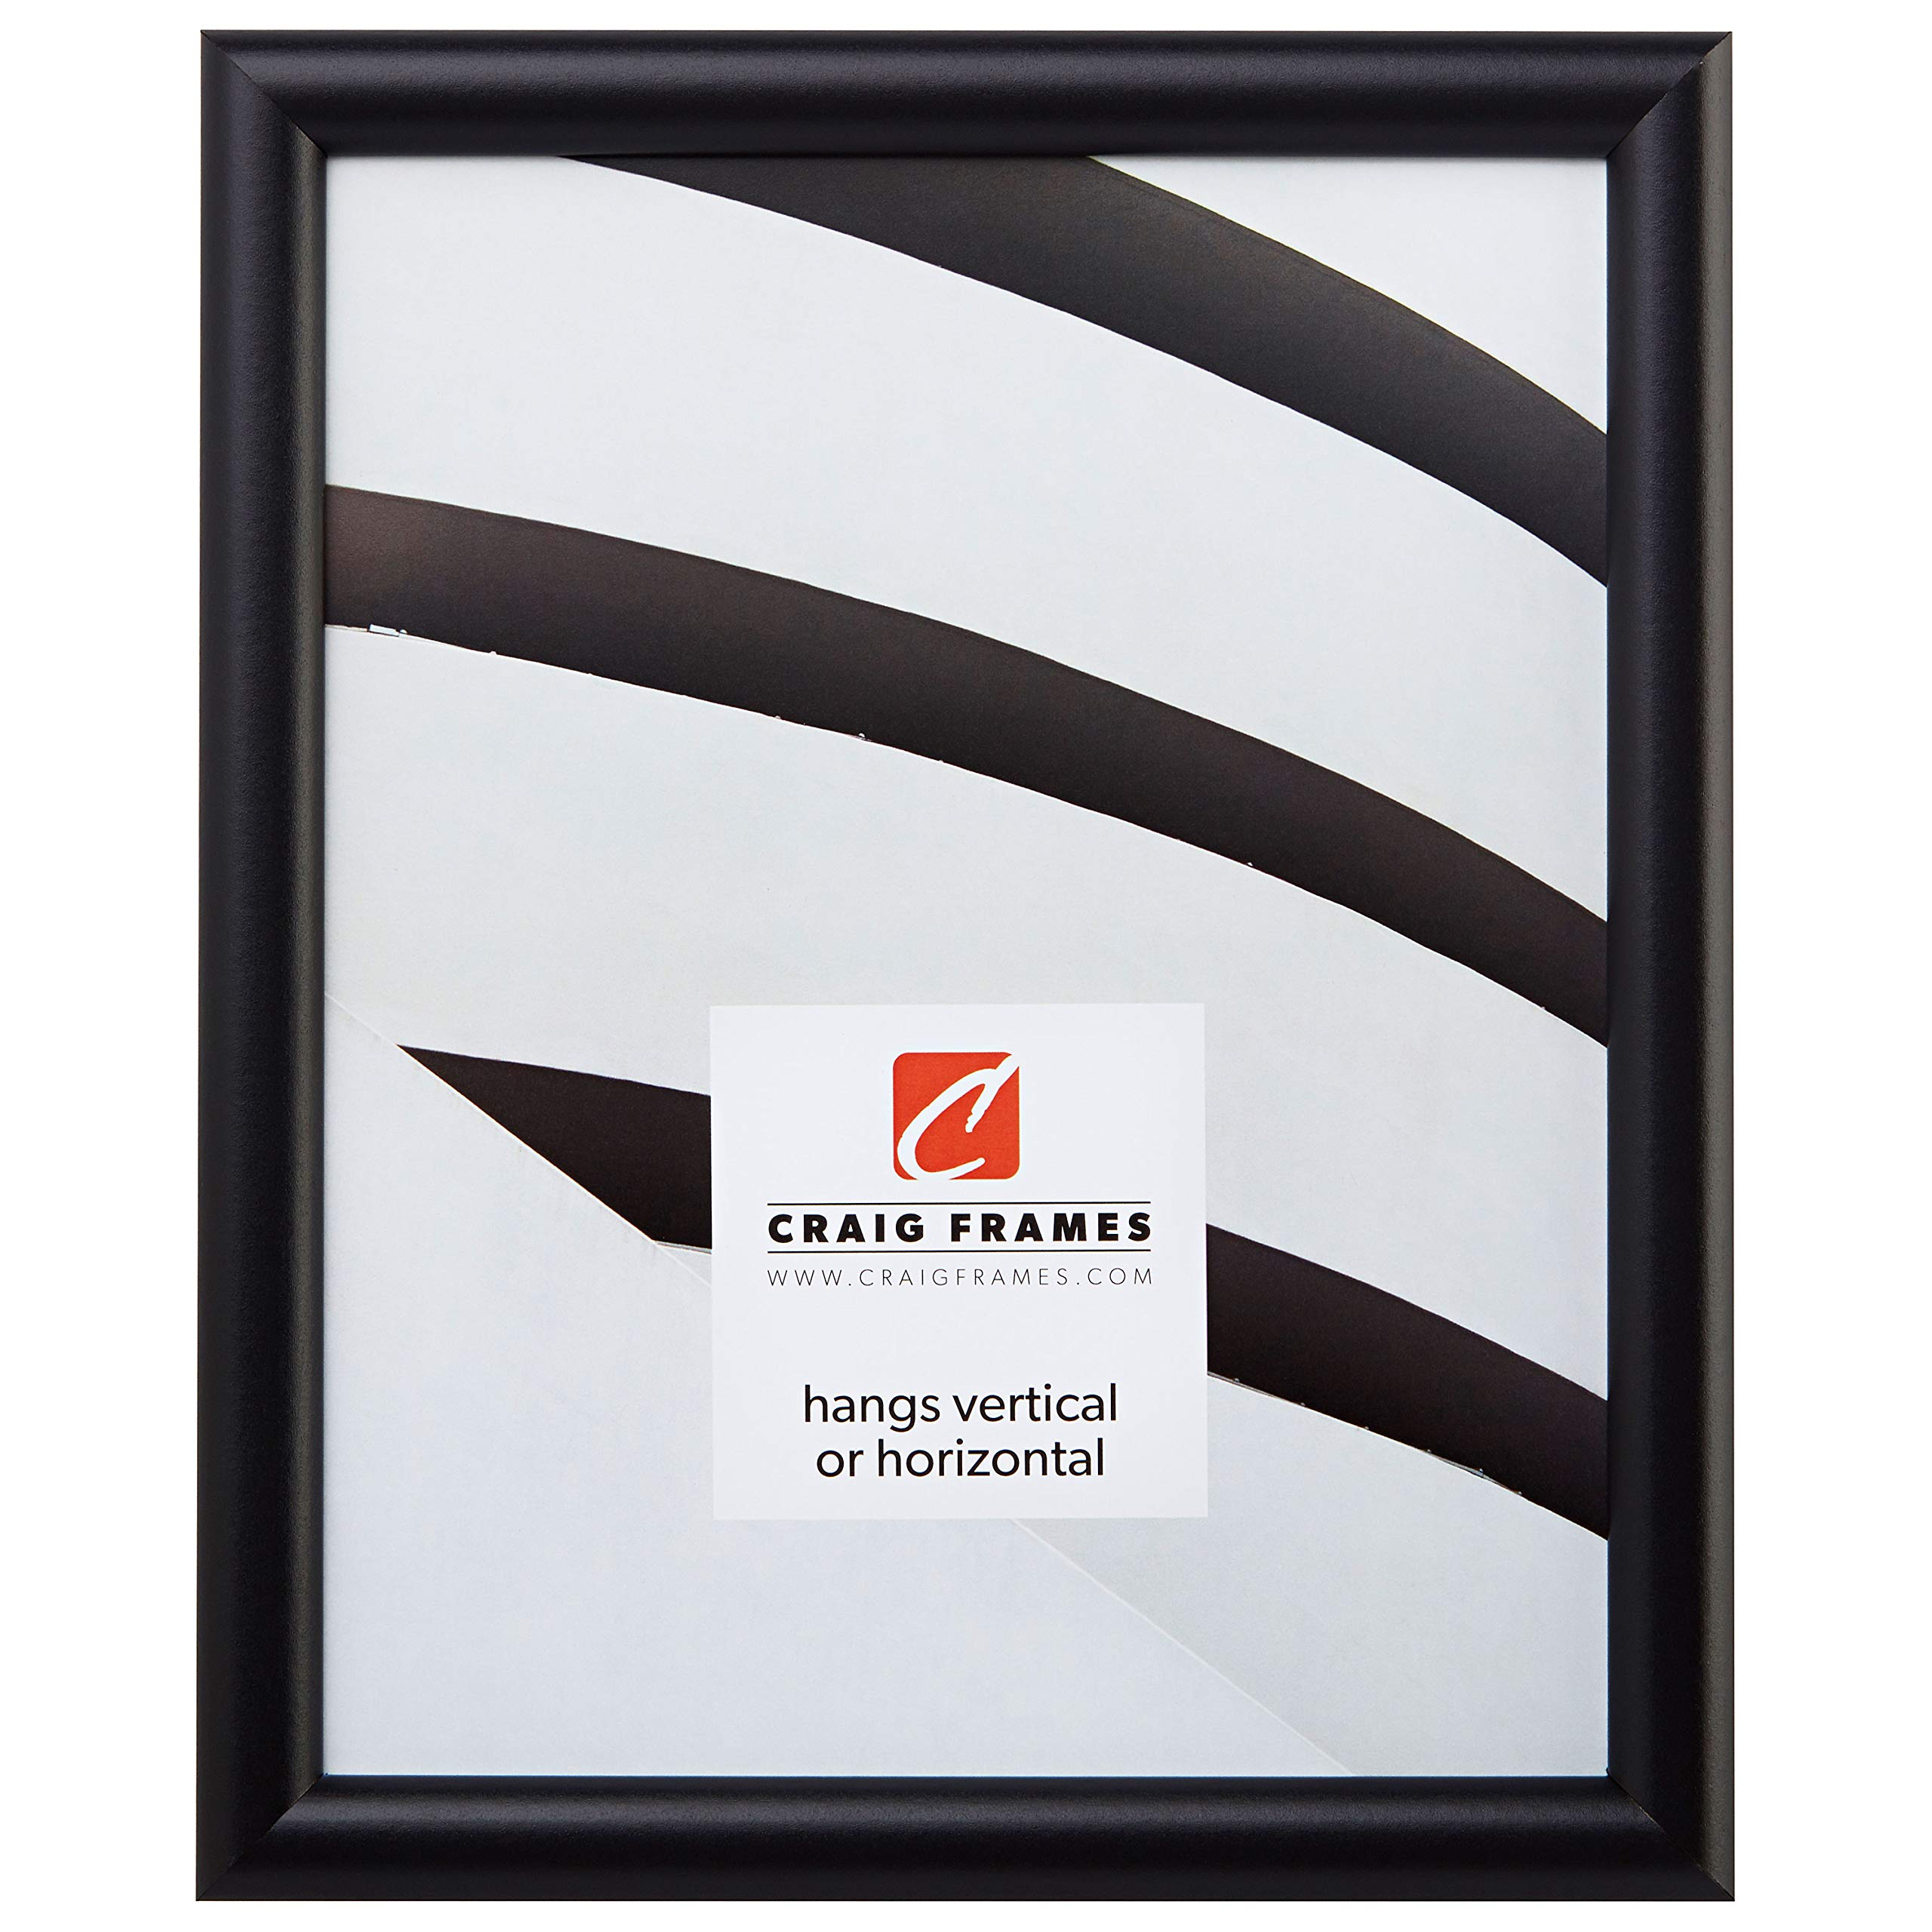 Craig Frames fw2bk 11 by 17-Inch Picture Frame, Smooth Finish, 0.765-Inch Wide, Black